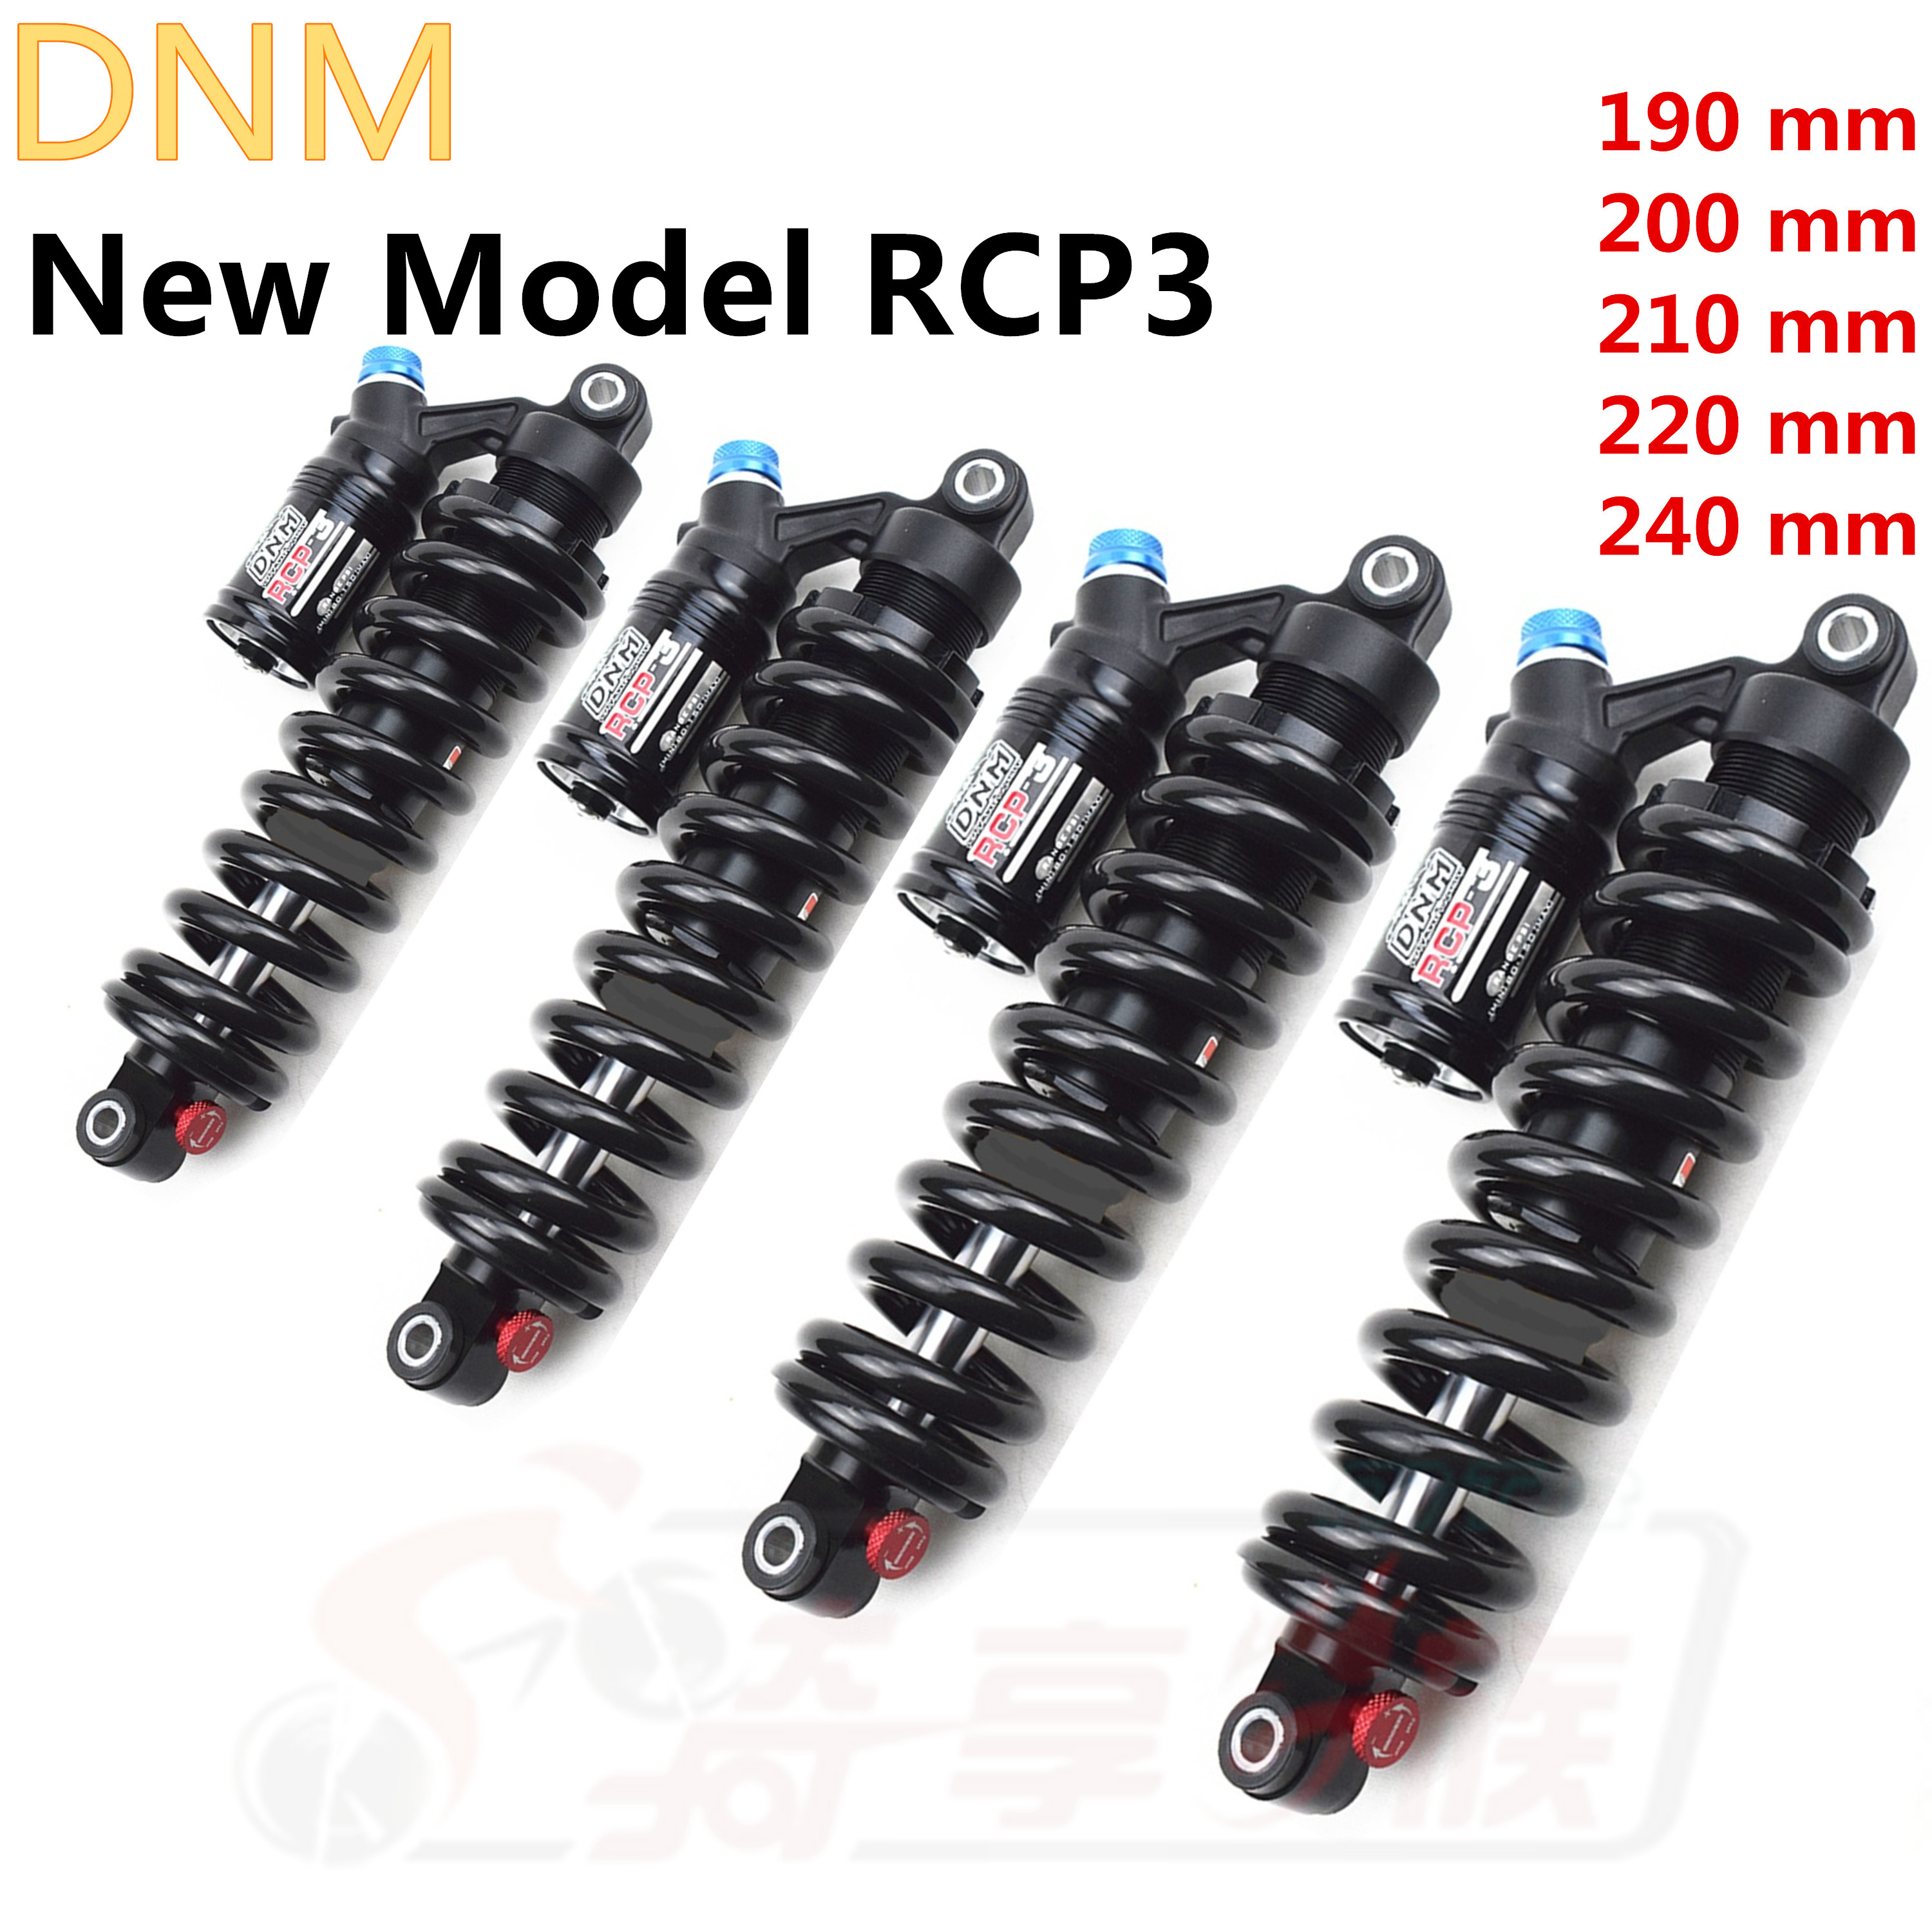 DNM RCP3 RCP2S Rear Shock Absorber Durable Adjustable Suspension Shocks Spring Downhill MTB Bicycle Mountain Bike